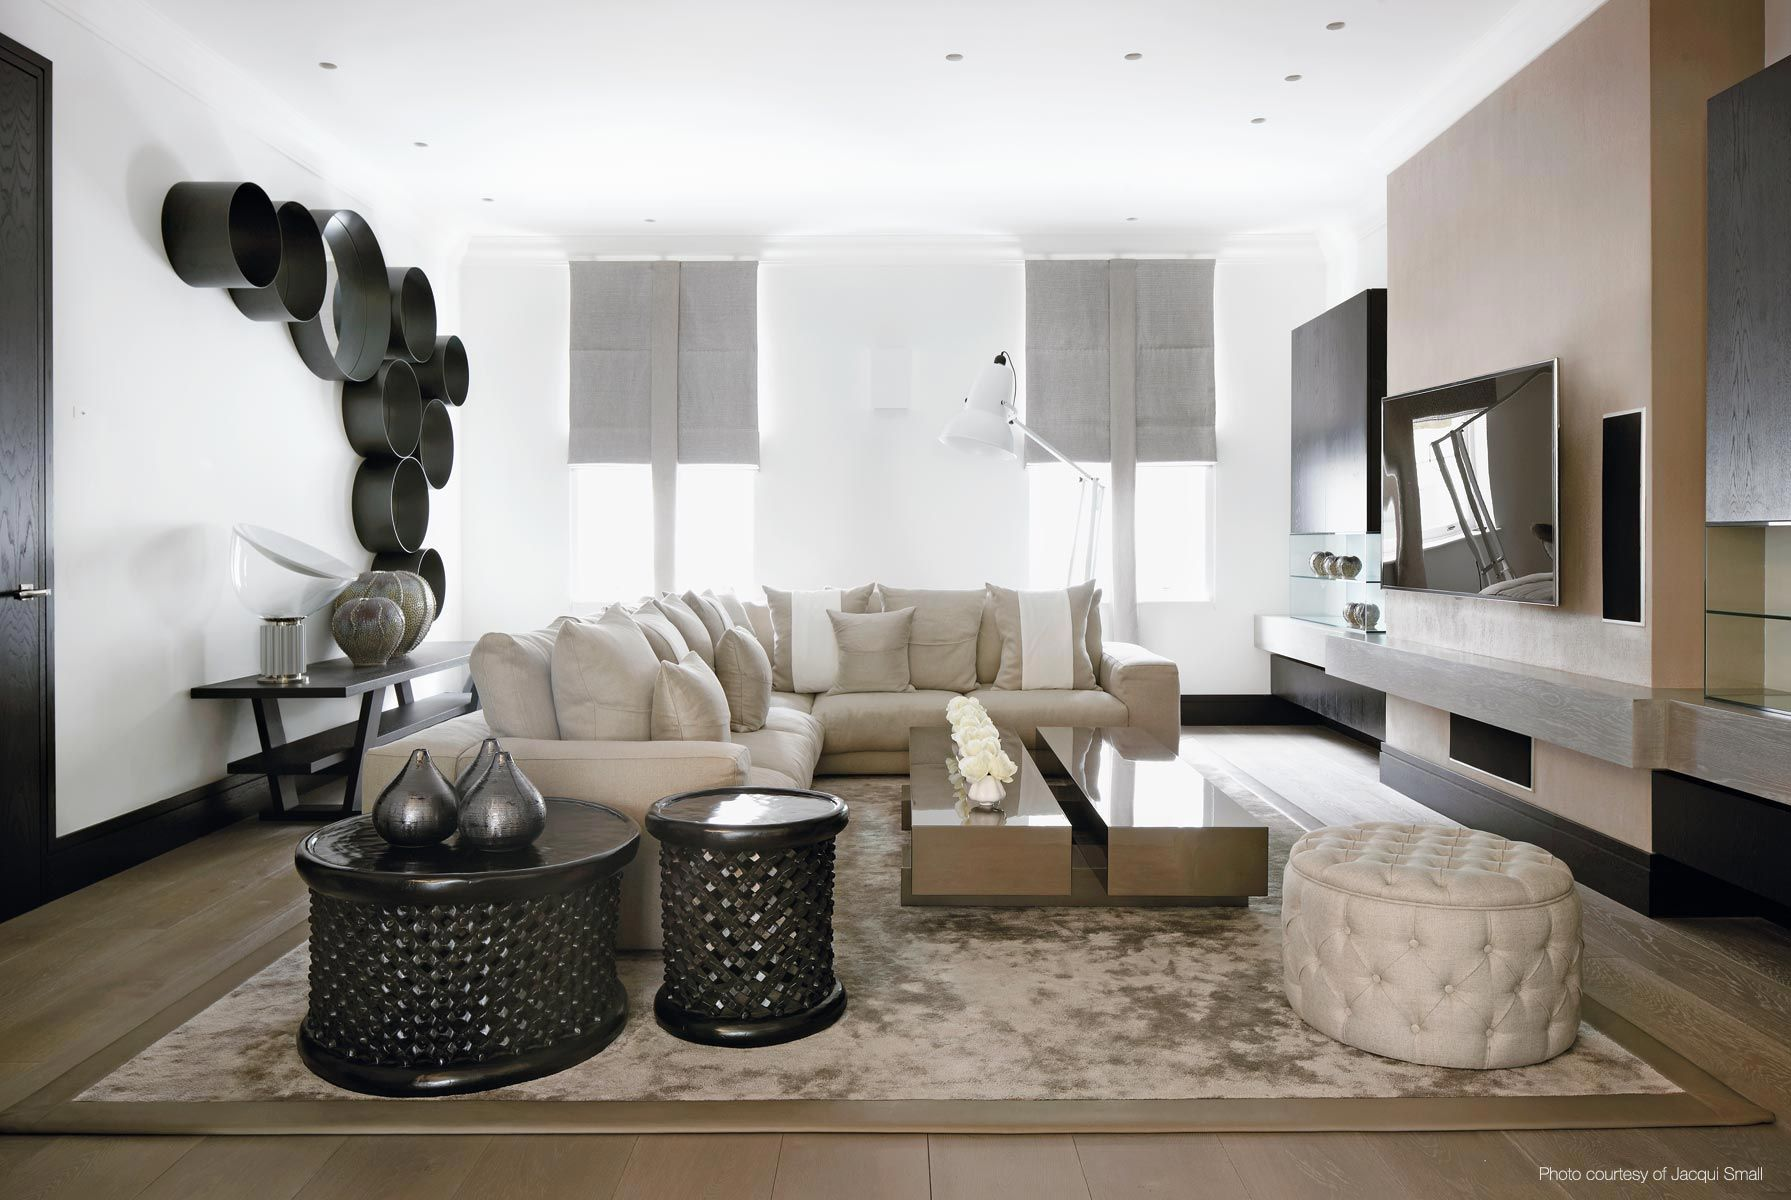 Living Room Design Contemporary Mesmerizing Kelly Hoppen Couturekellyhoppen Interior Designcontemporary Review